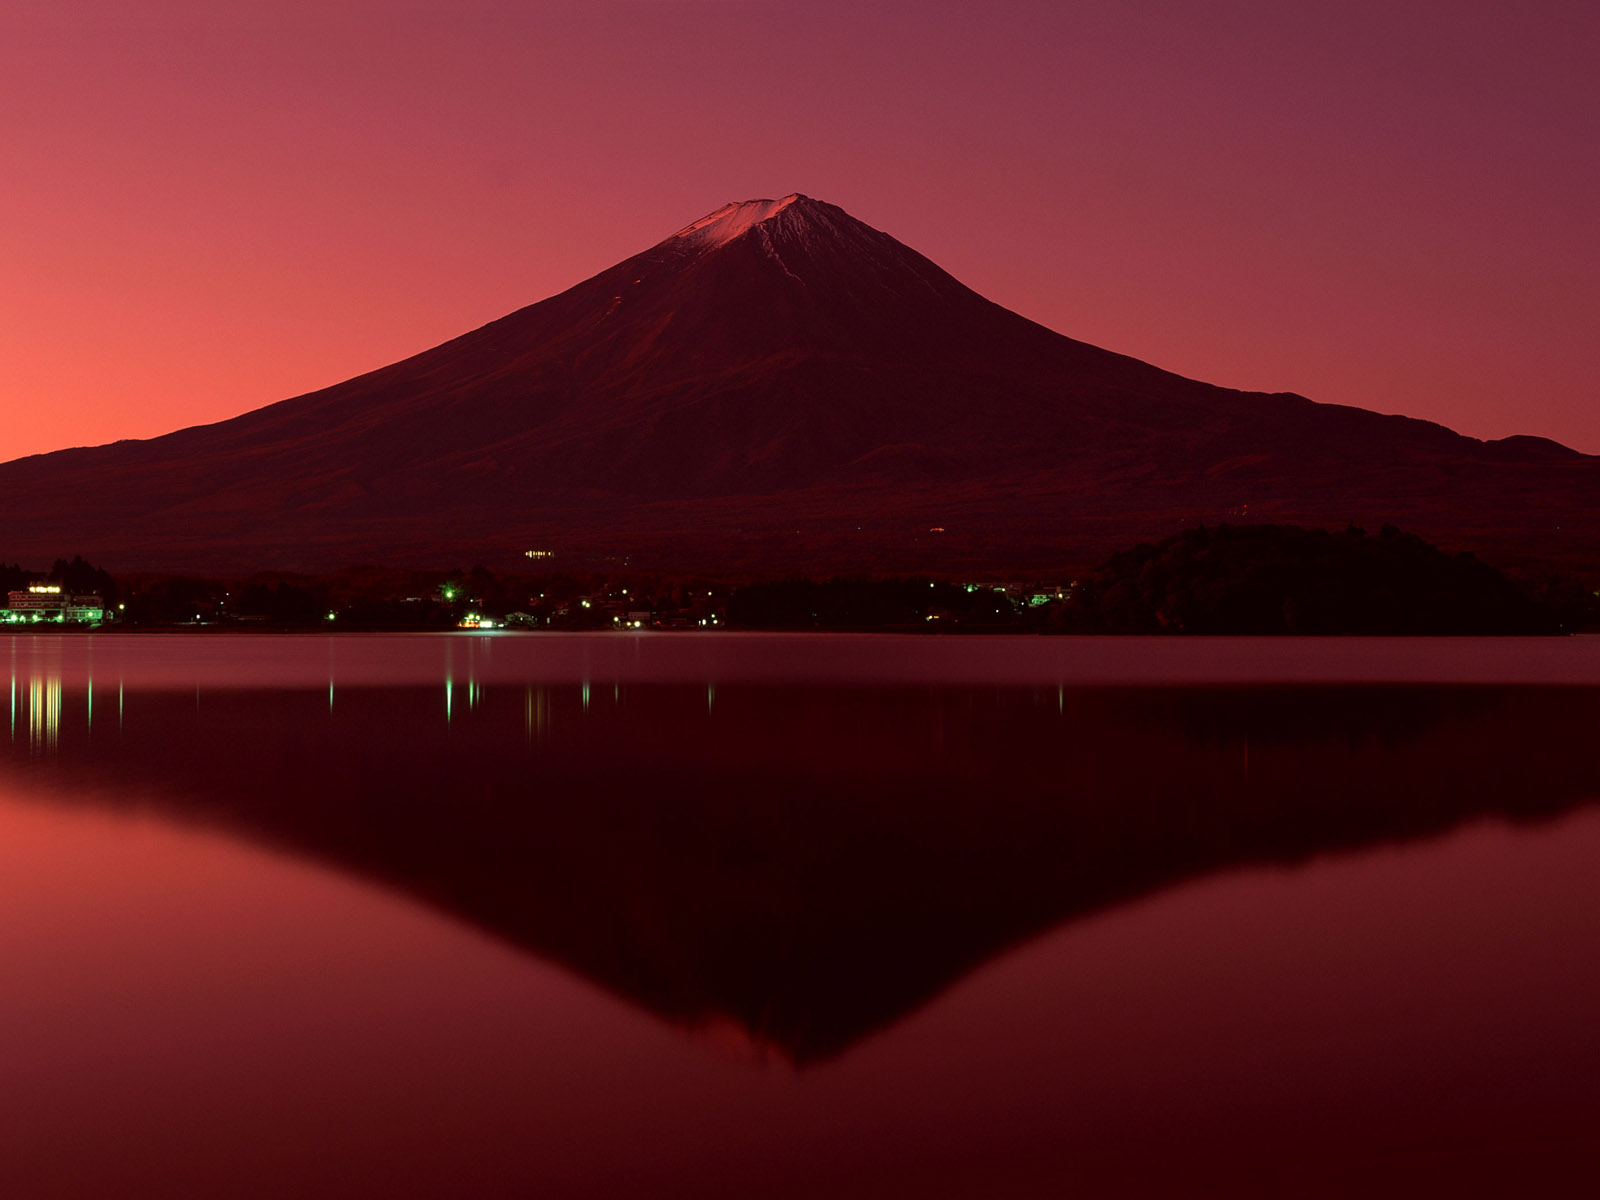 mount-fuji-wallpapers- (23)